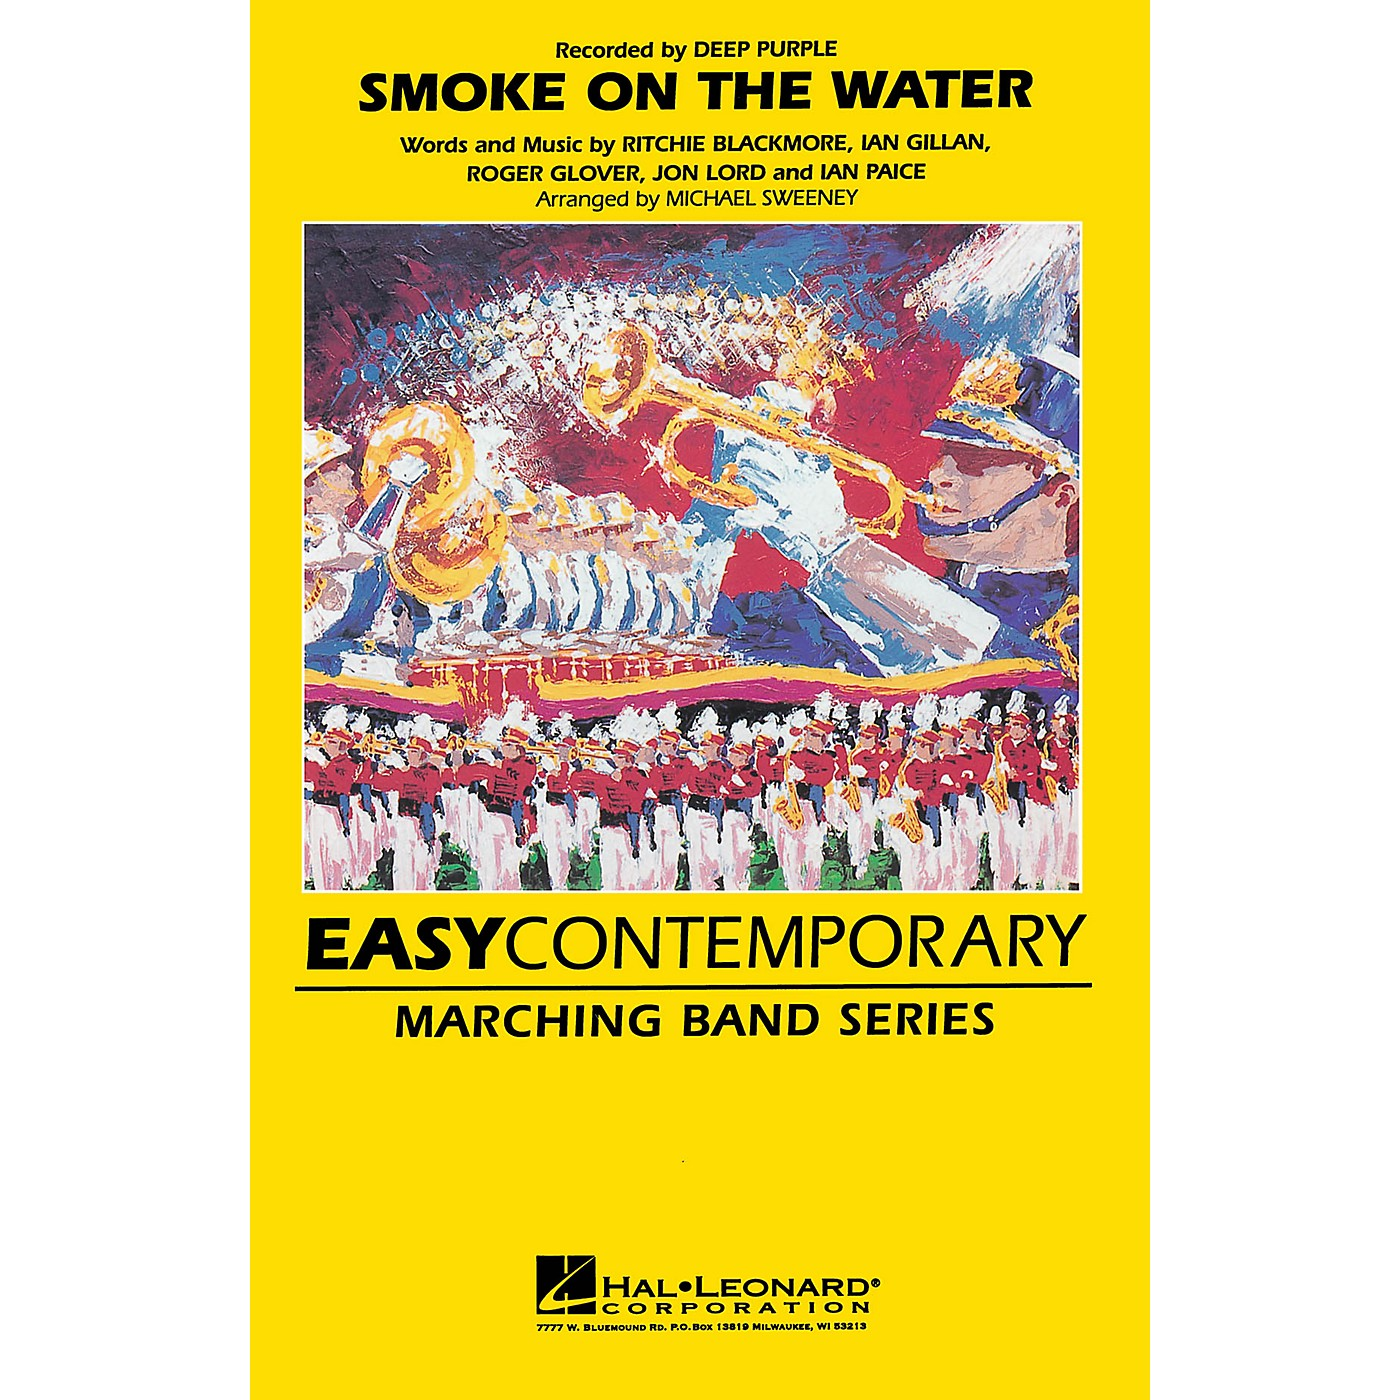 Hal Leonard Smoke on the Water Marching Band Level 2-3 Arranged by Michael Sweeney thumbnail